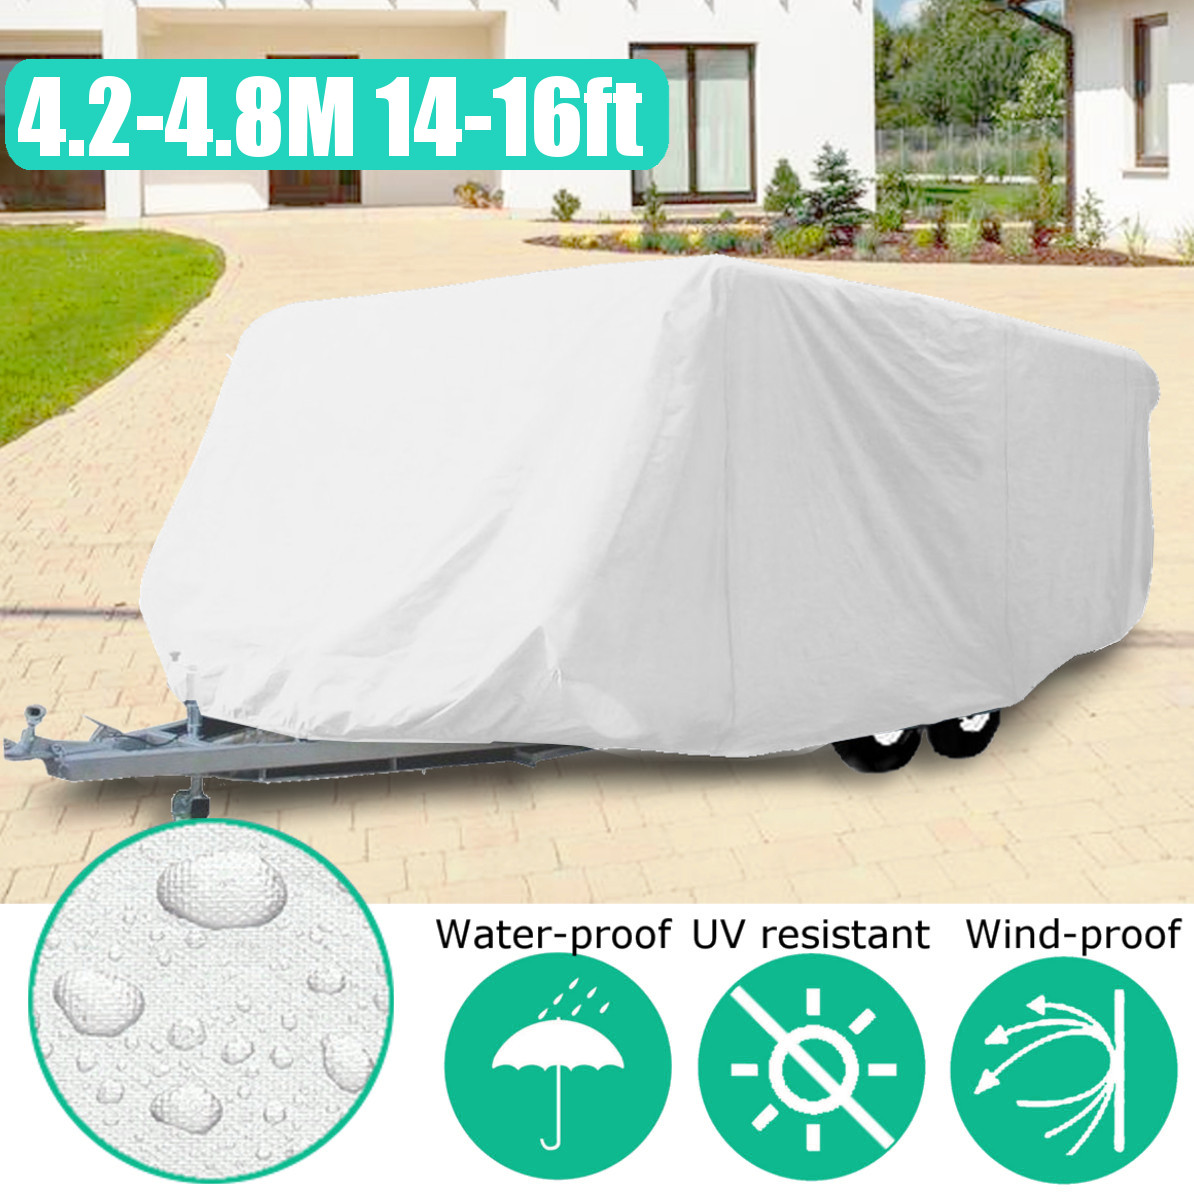 14-16ft Pop Up Folding Waterproof Anti-UV C amper Tent Trailer Storage Cover With Fixed Ring14-16ft Pop Up Folding Waterproof Anti-UV C amper Tent Trailer Storage Cover With Fixed Ring